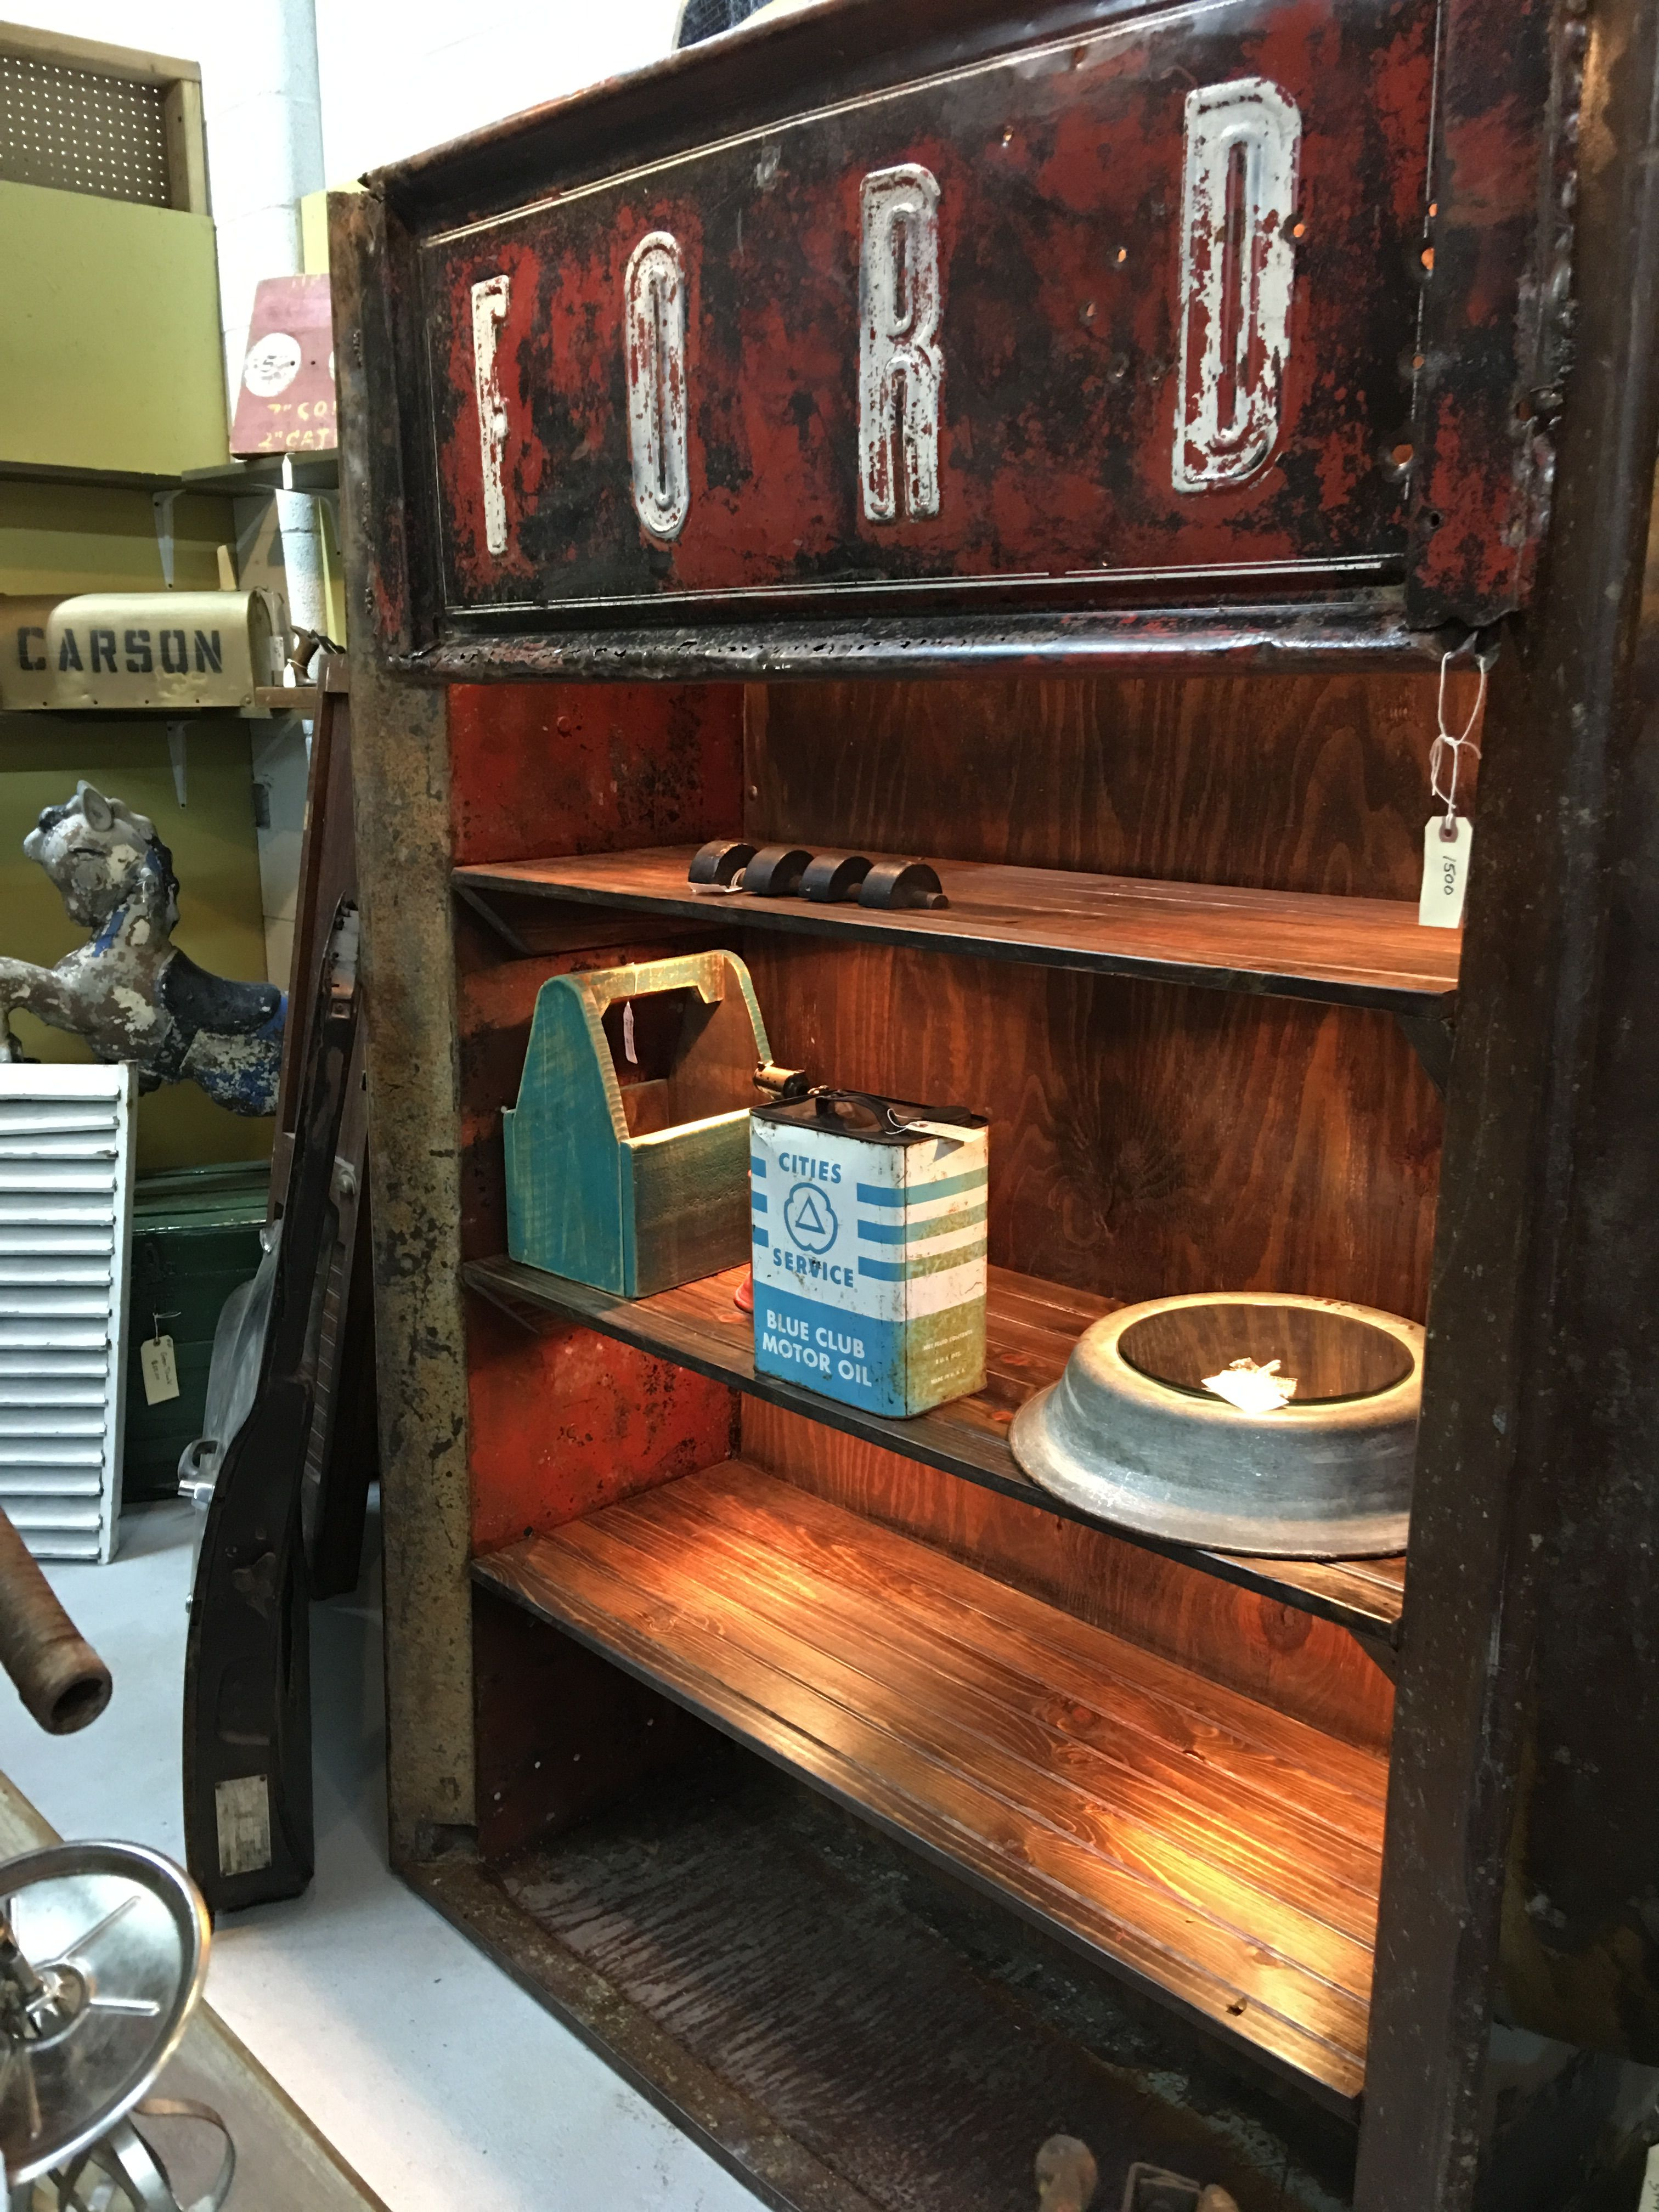 Ford truck bed repurposed into shelve by Southern Boy Primitives